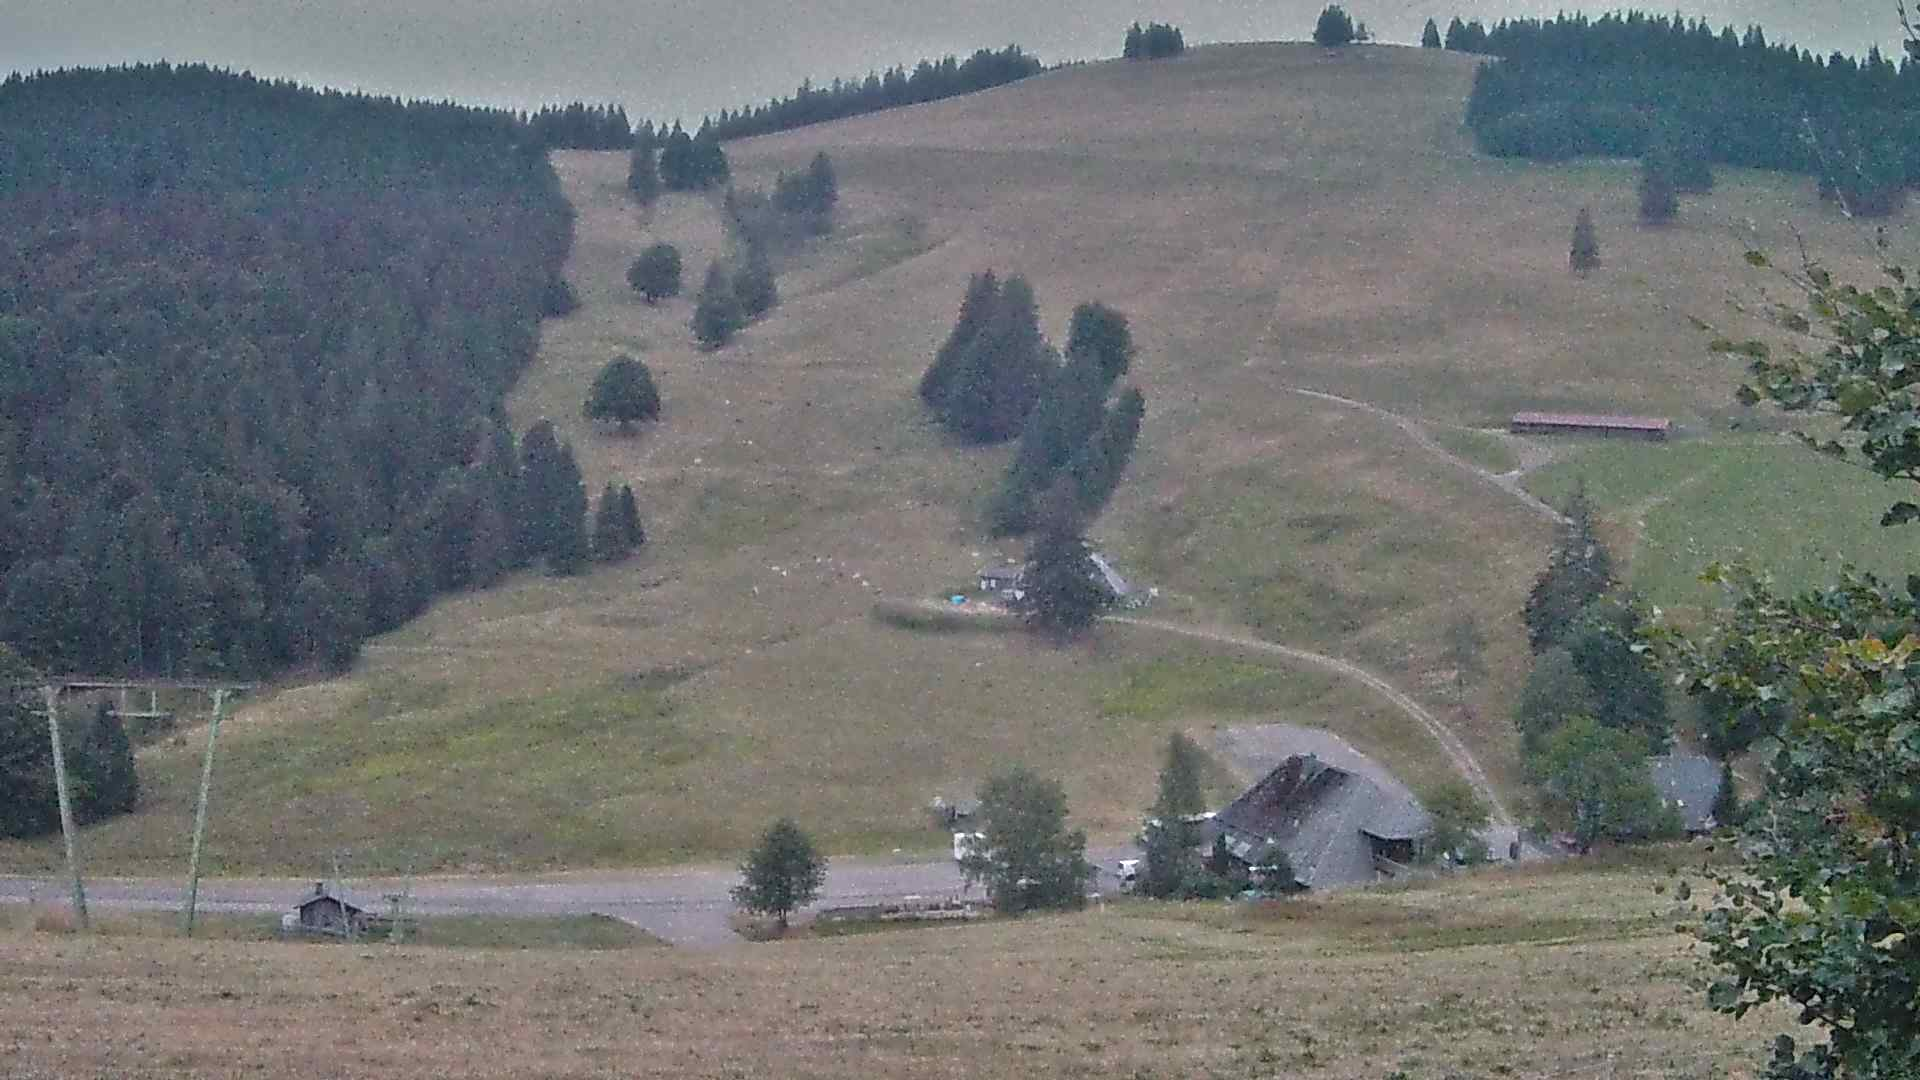 Webcam Stollenbacher Hof